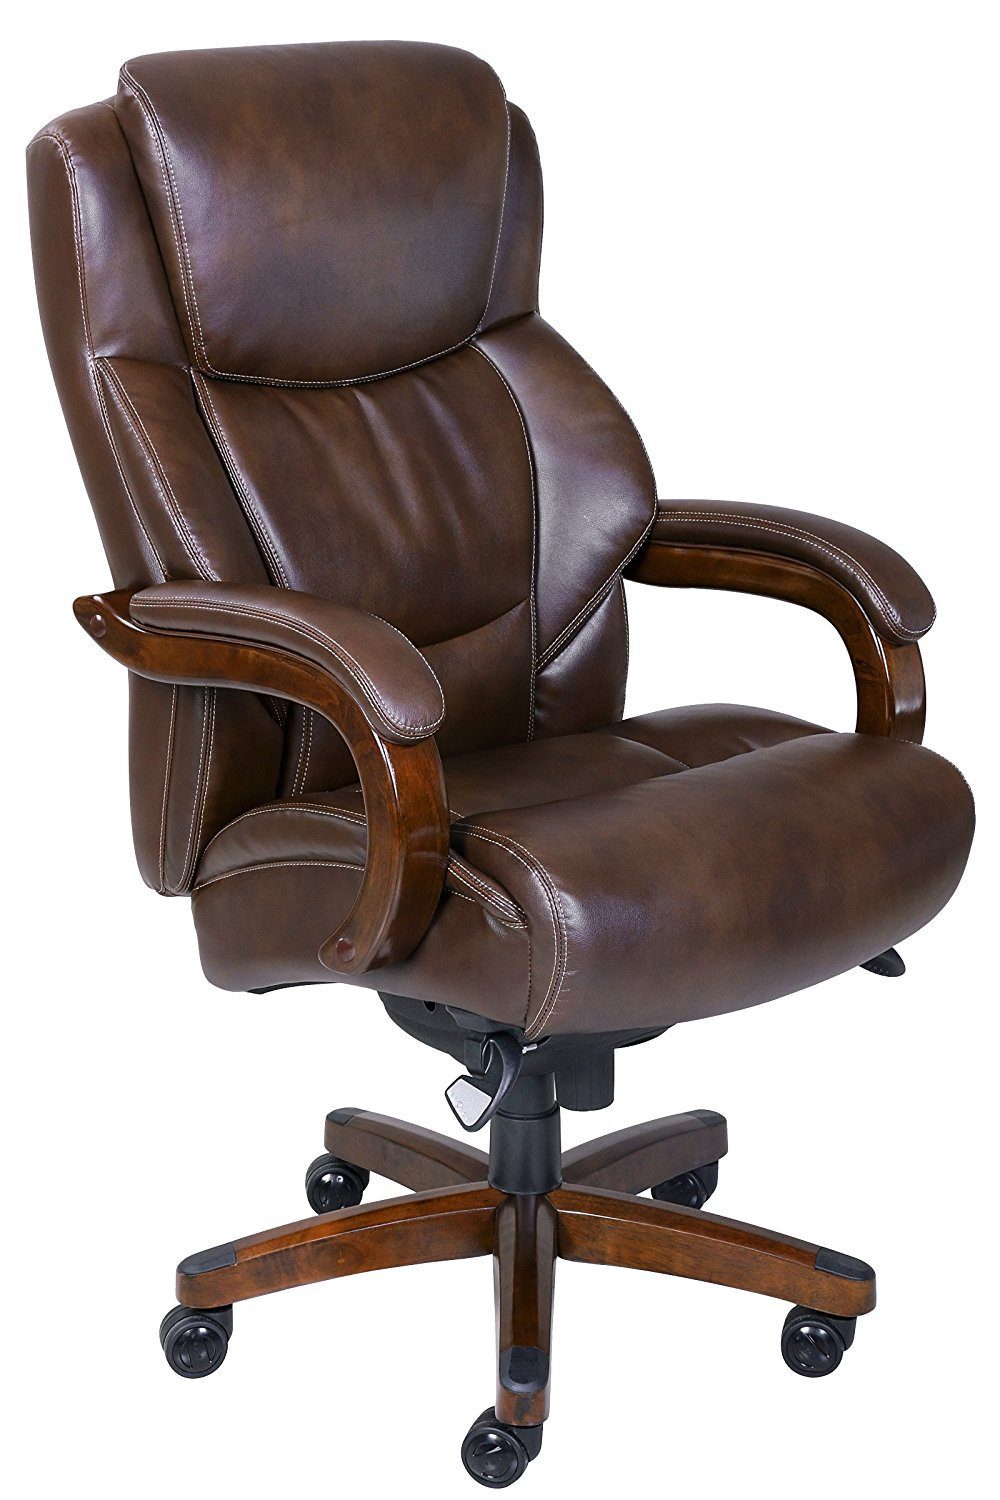 lazy boy delano chair